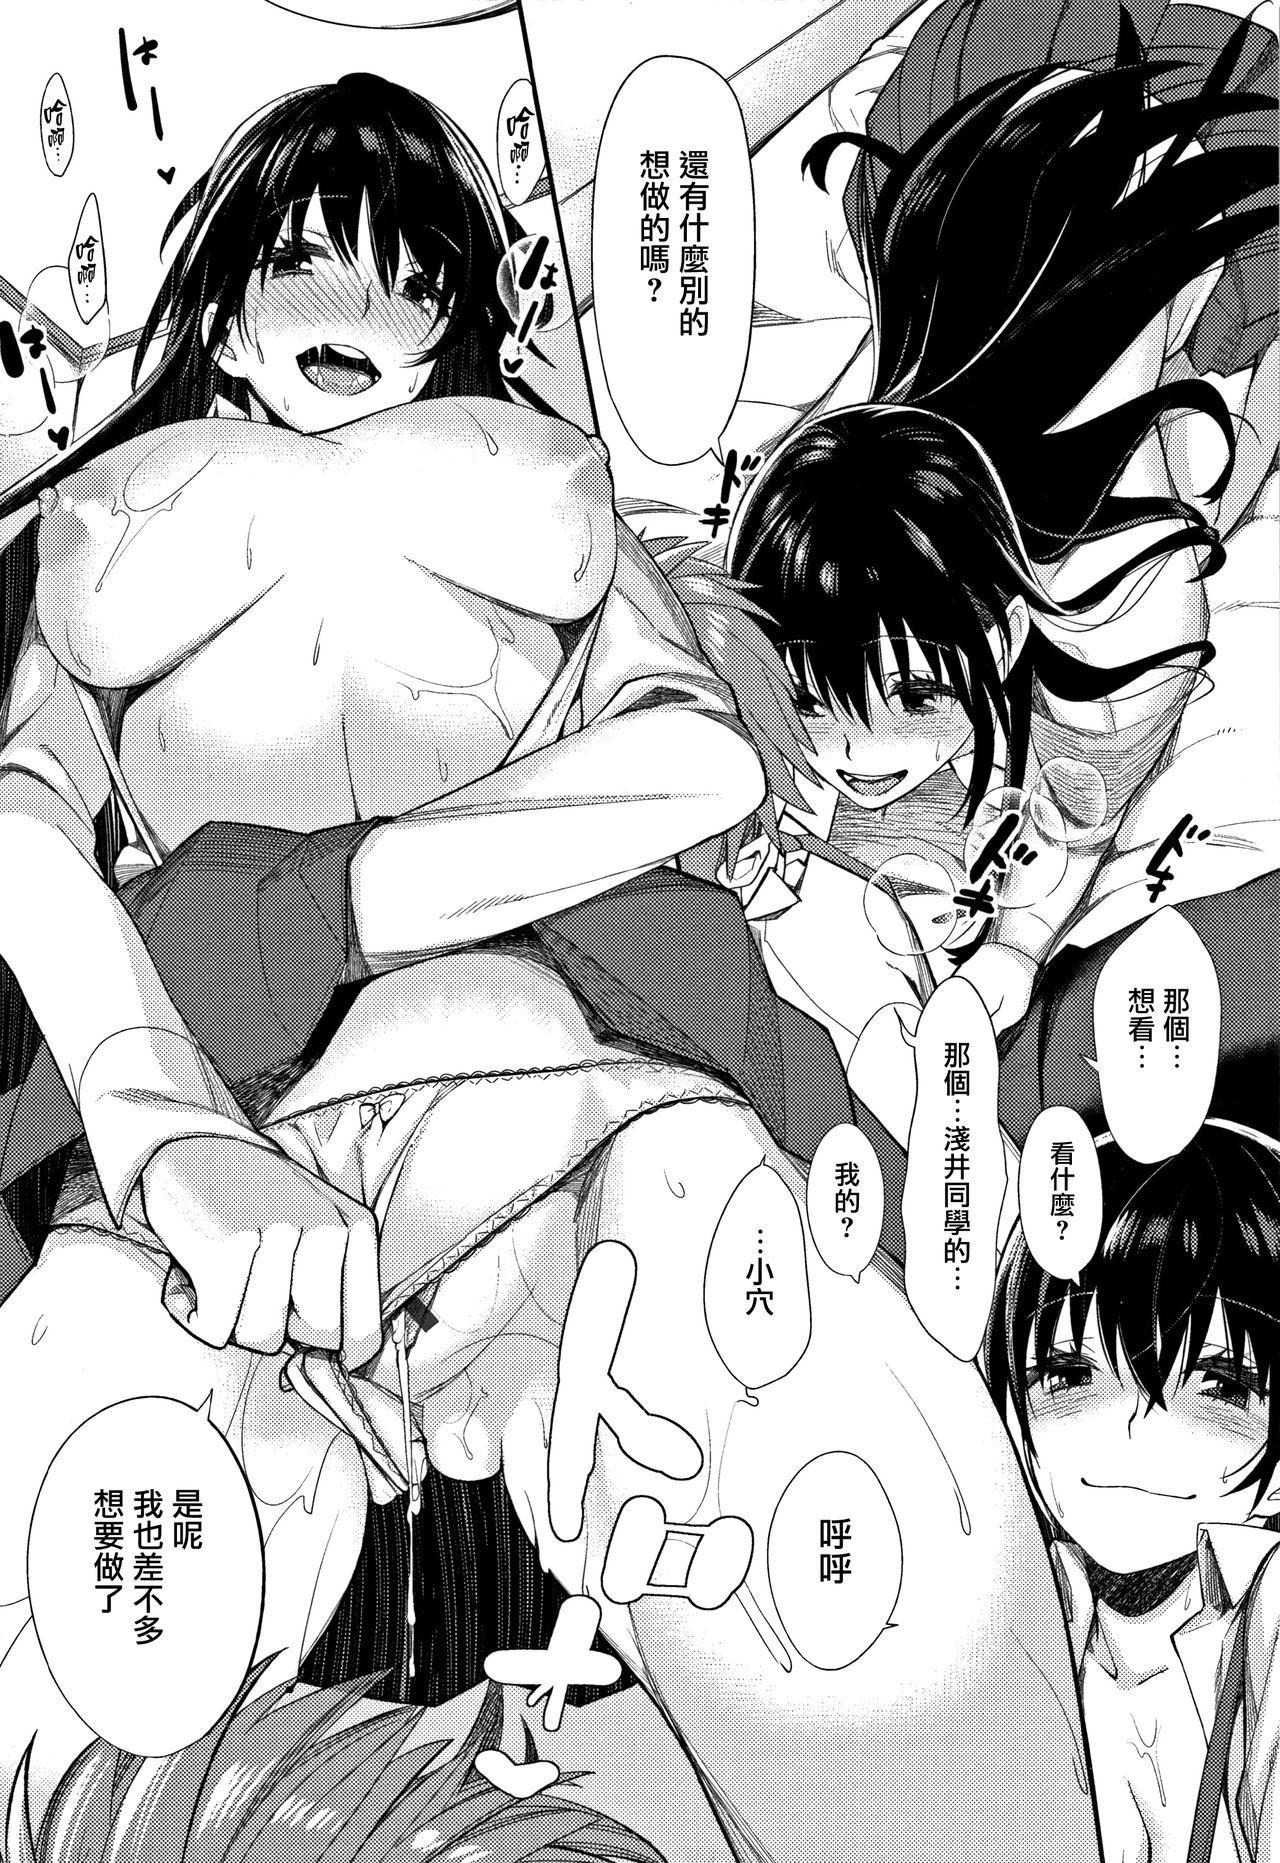 [MGMEE] Bokura no Etude - Our H Chu Do Ch.1-7 [Chinese] [無邪気漢化組] 117